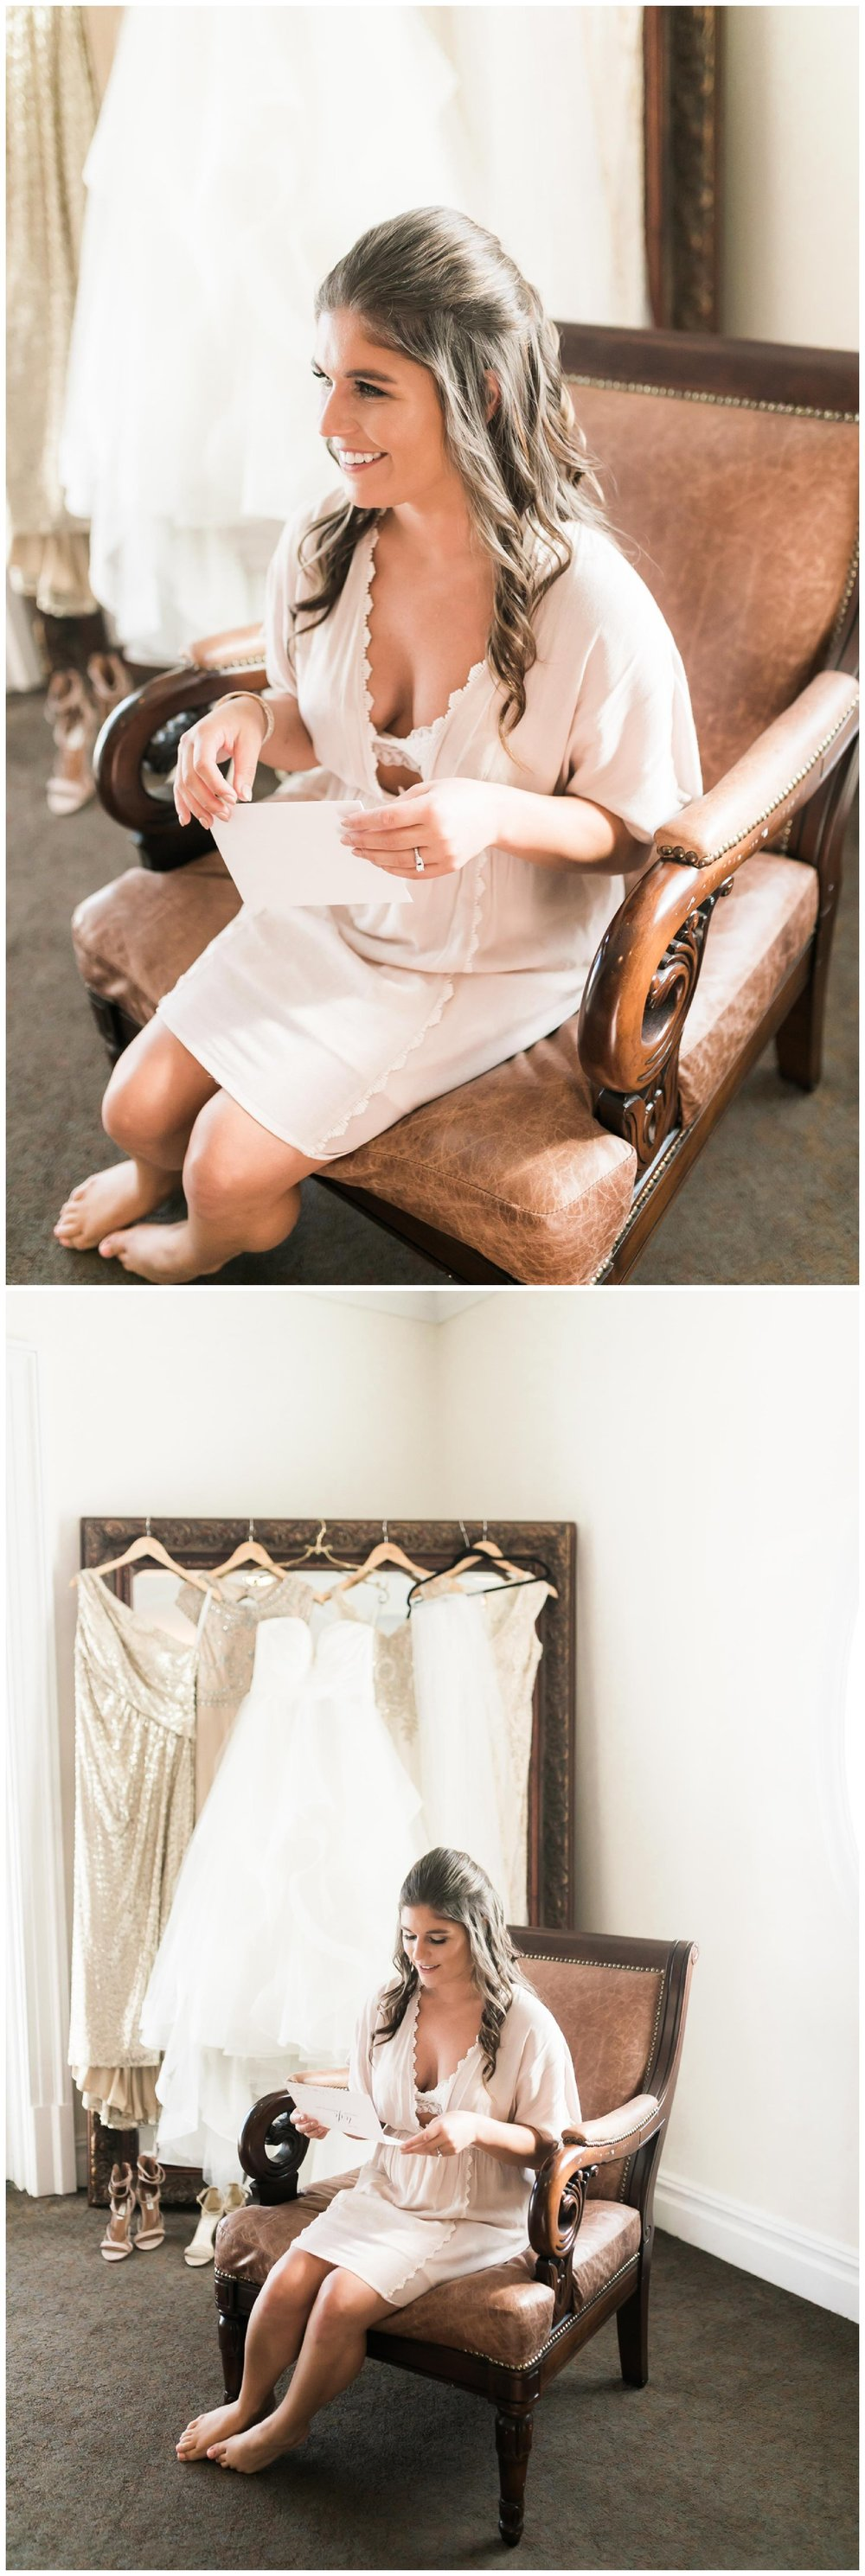 JenandEd_NewJerseyWedding_CarriageHouse_Galloway_NJ__SouthJersey_Wedding_Photographer_MagdalenaStudios_0249.jpg